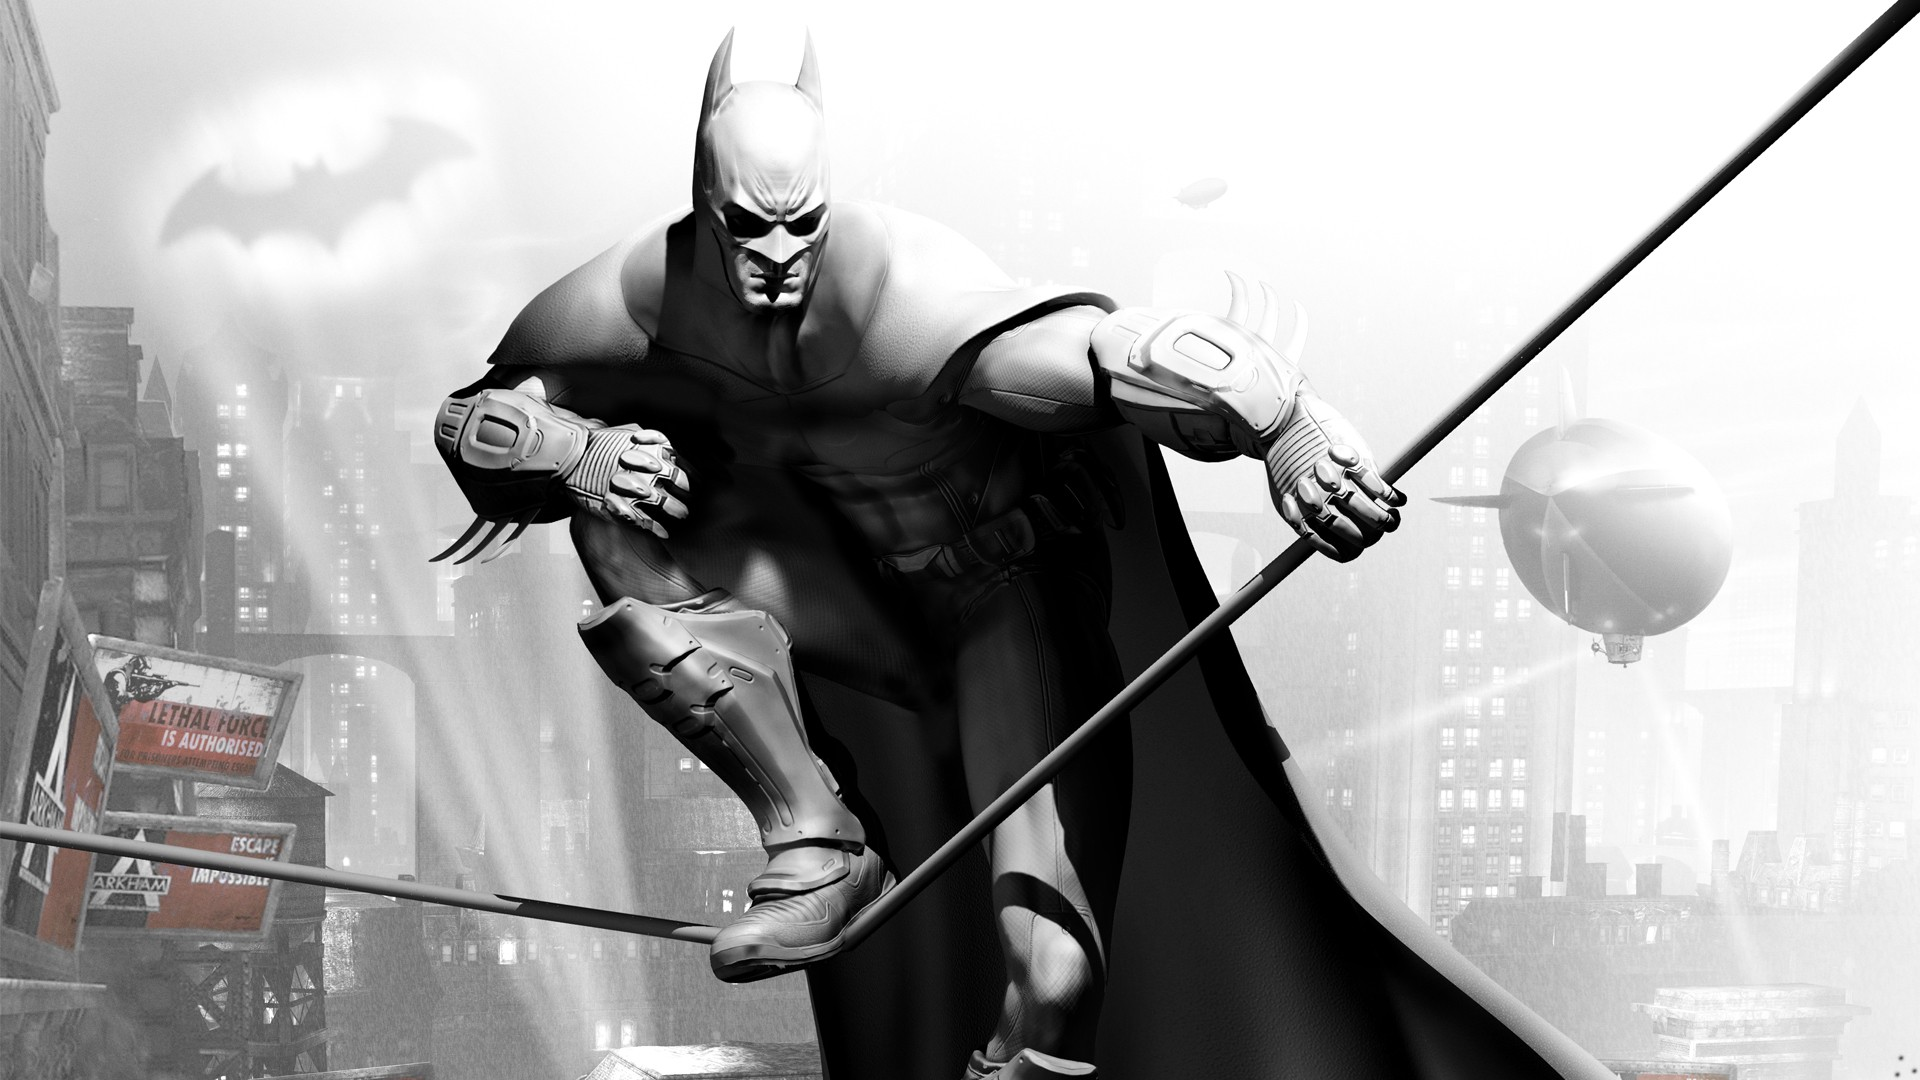 Explore the Collection Batman Video Games Batman Arkham City 408819 1920x1080